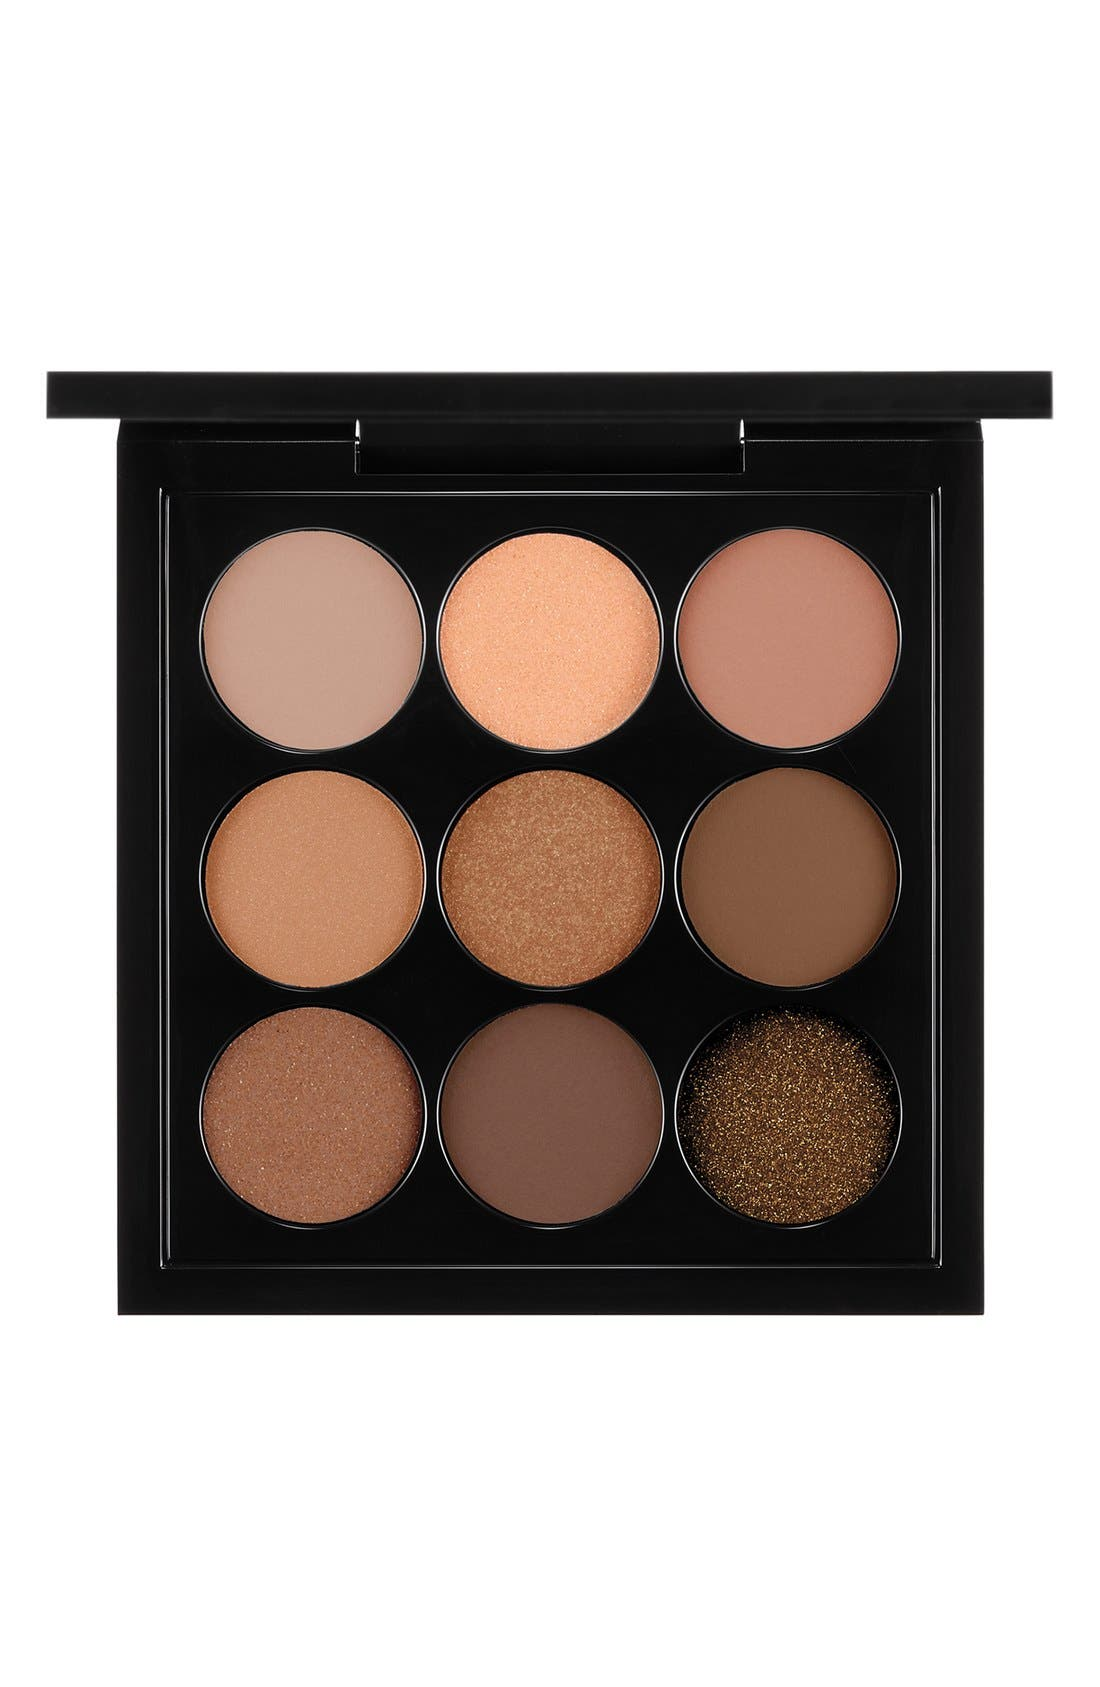 MAC Amber Times Nine Eyeshadow Palette ($53 Value)